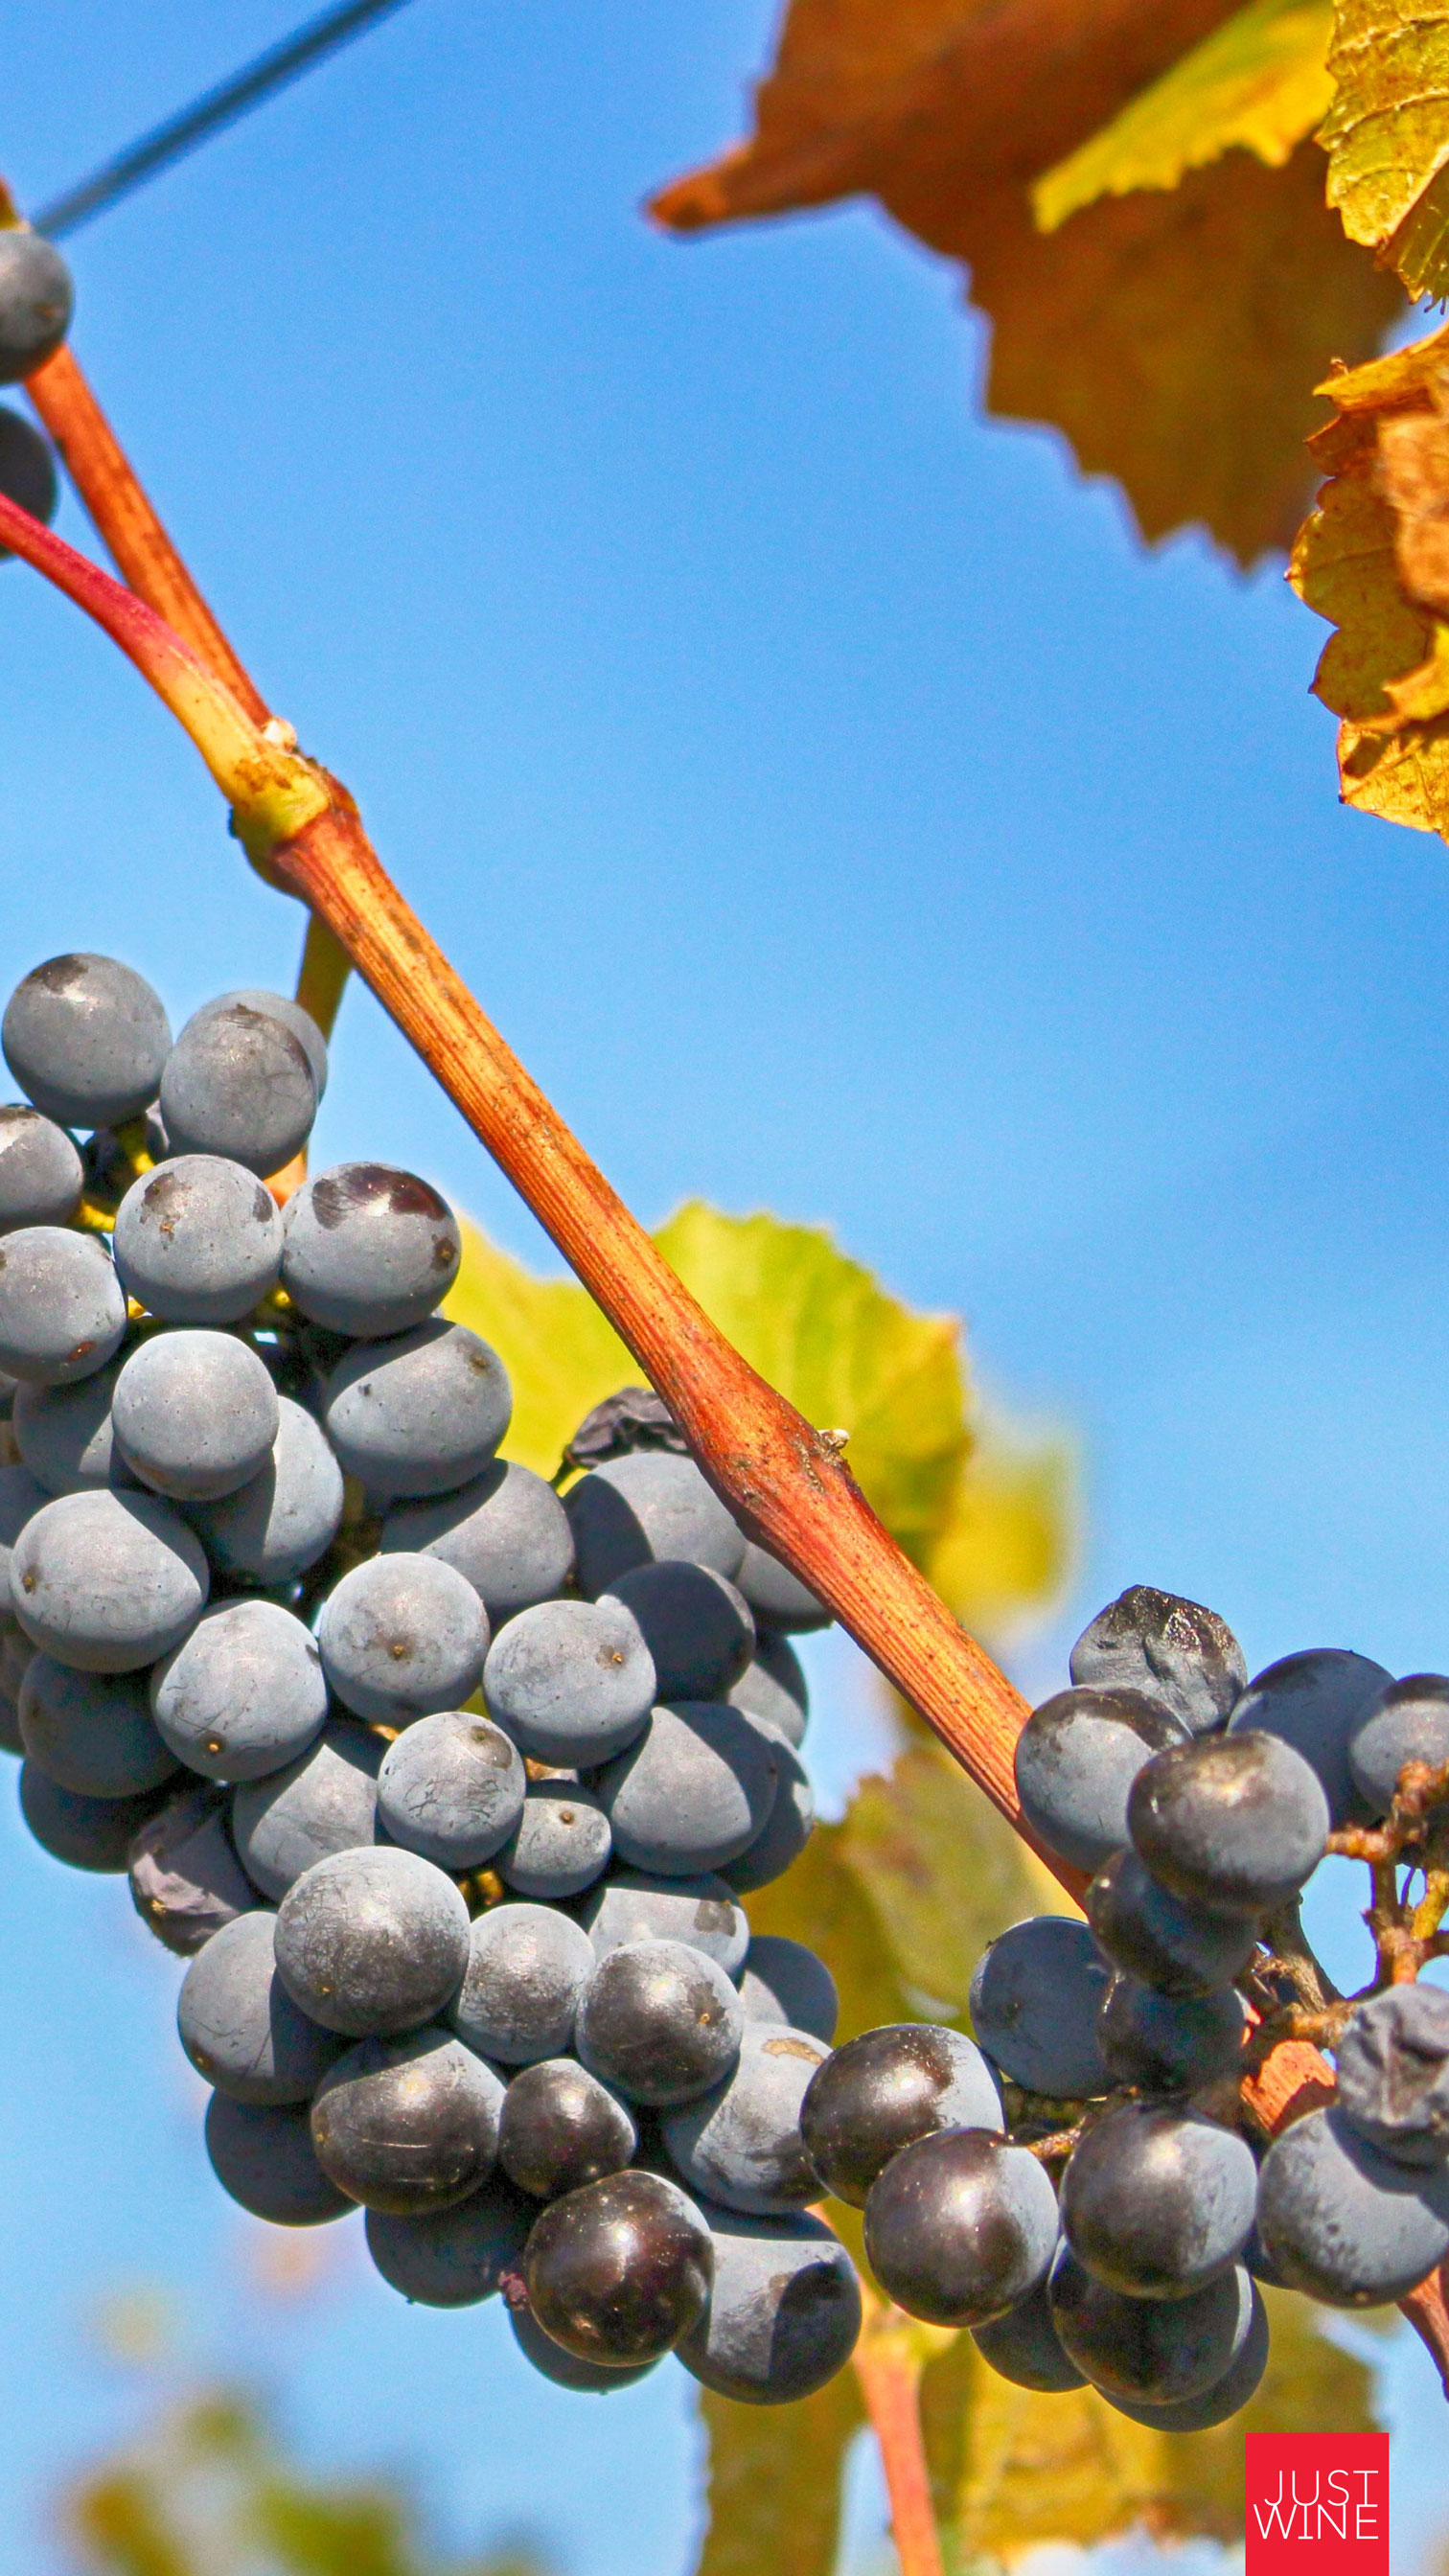 just-wine-mobile-wallpaper-grapes-harvest